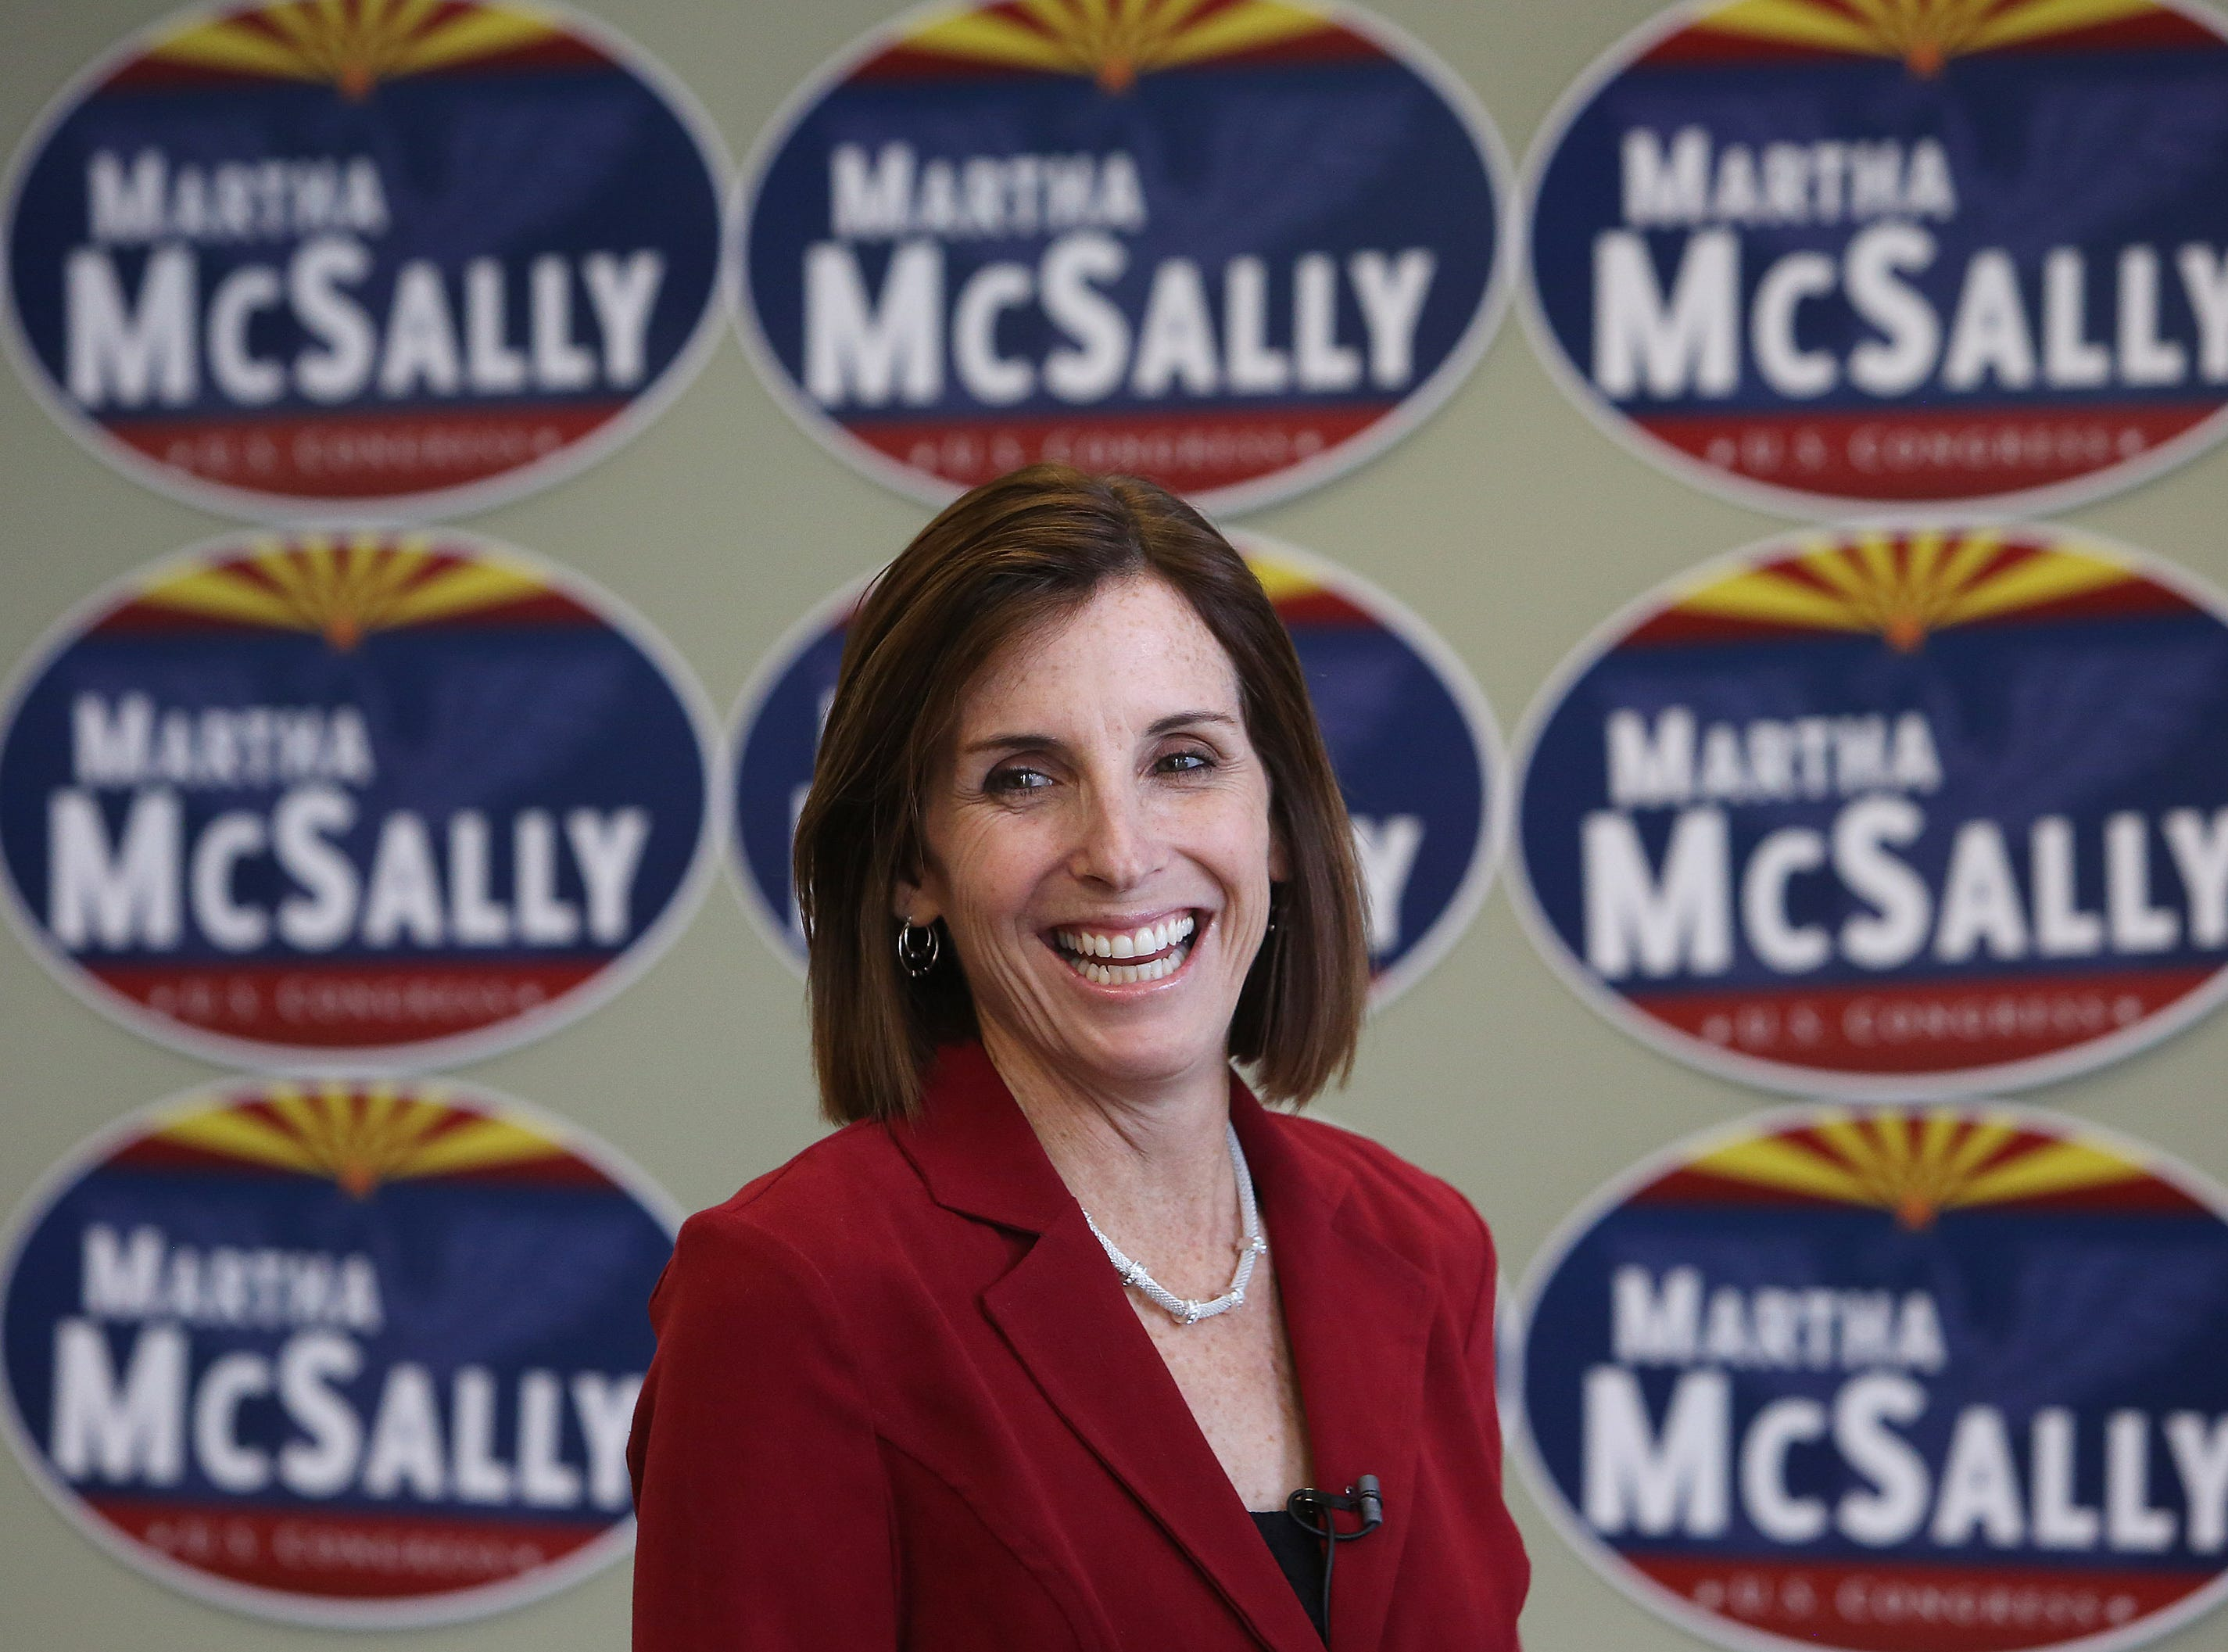 Martha McSally meets the media Dec. 17, 2014, in Tucson.